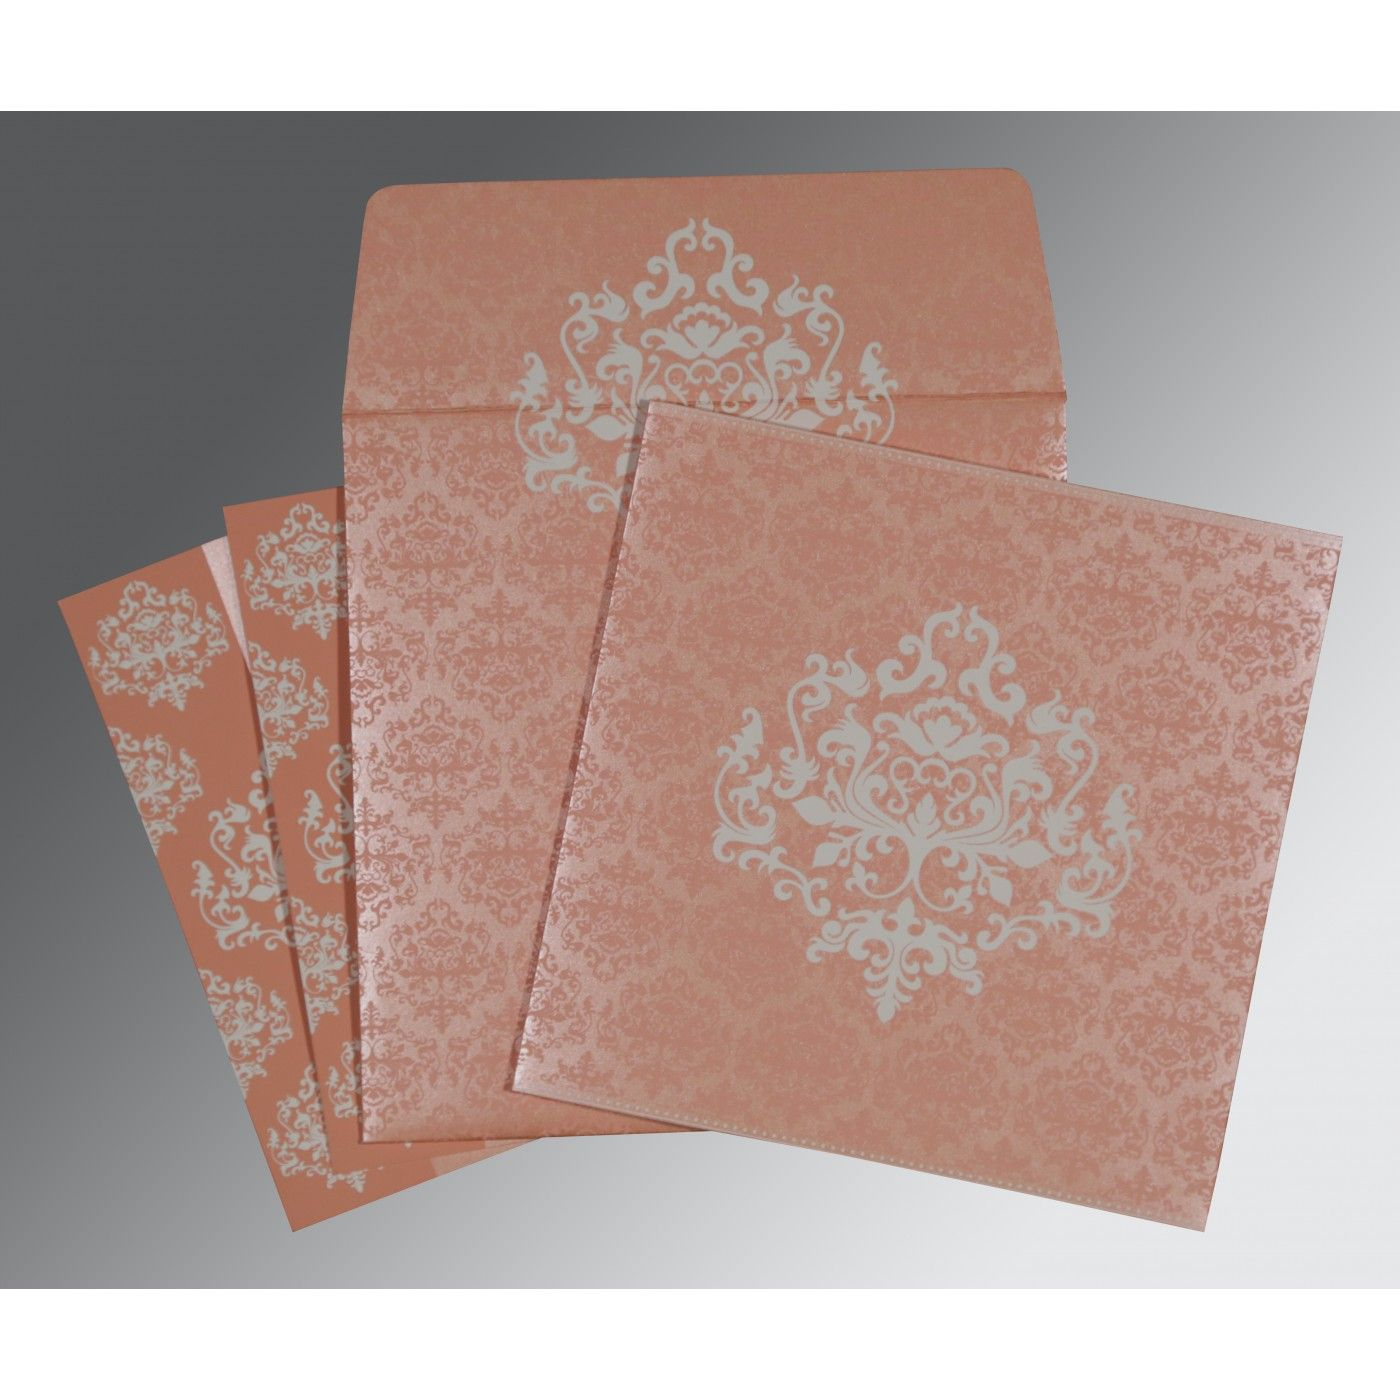 PINK SHIMMERY DAMASK THEMED - SCREEN PRINTED WEDDING CARD : CG-8254G - IndianWeddingCards